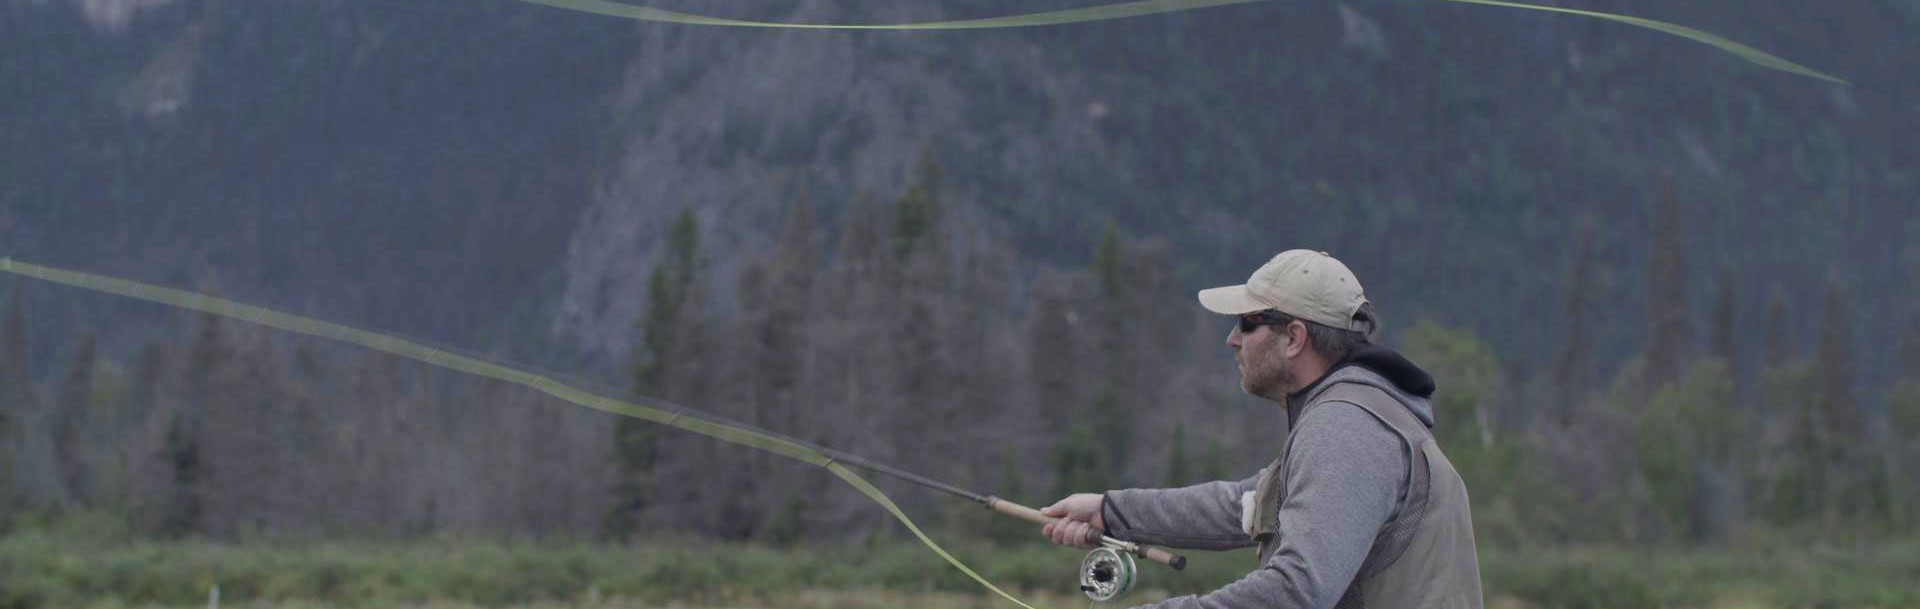 A man casting a fly fishing rod